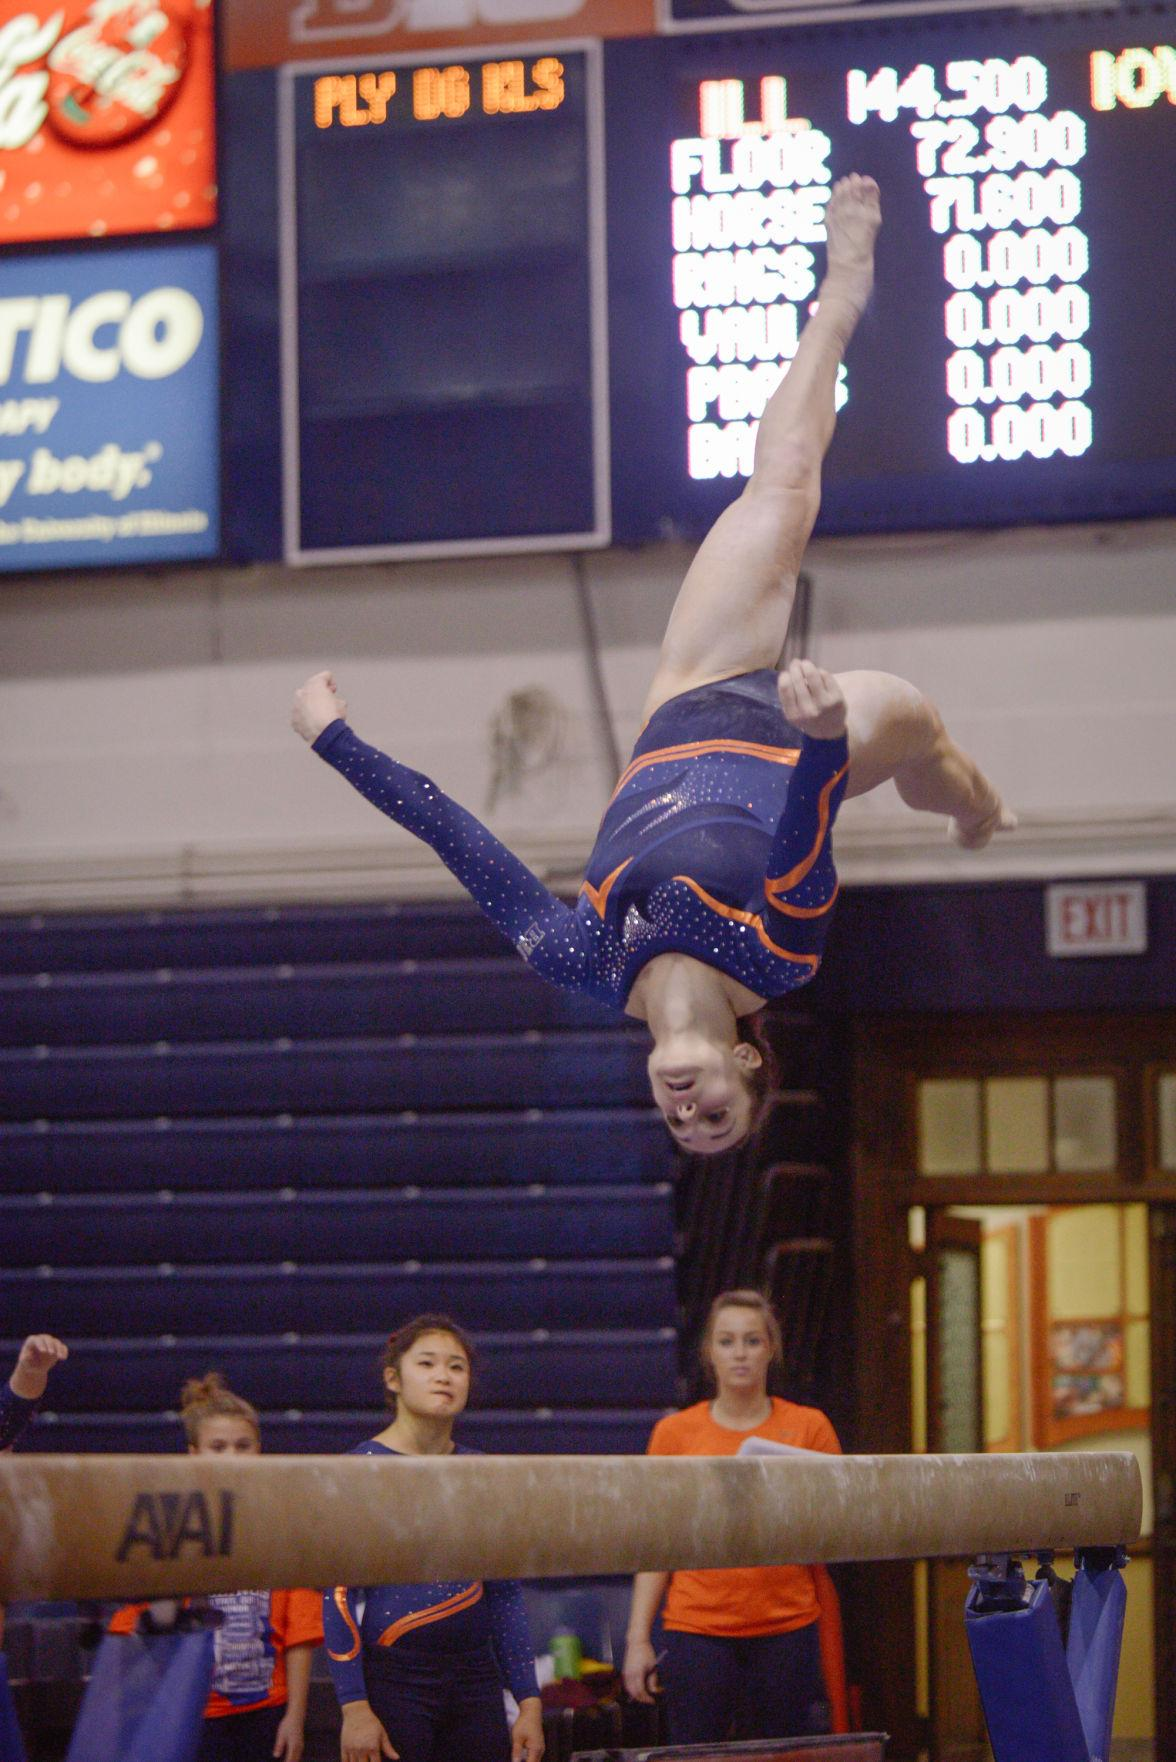 Illinois' Giana O'Connor performs a routine on the balance beam during the meet against Minnesota at Huff Hall on Feb.7. The Illini won 195.775-195.375.